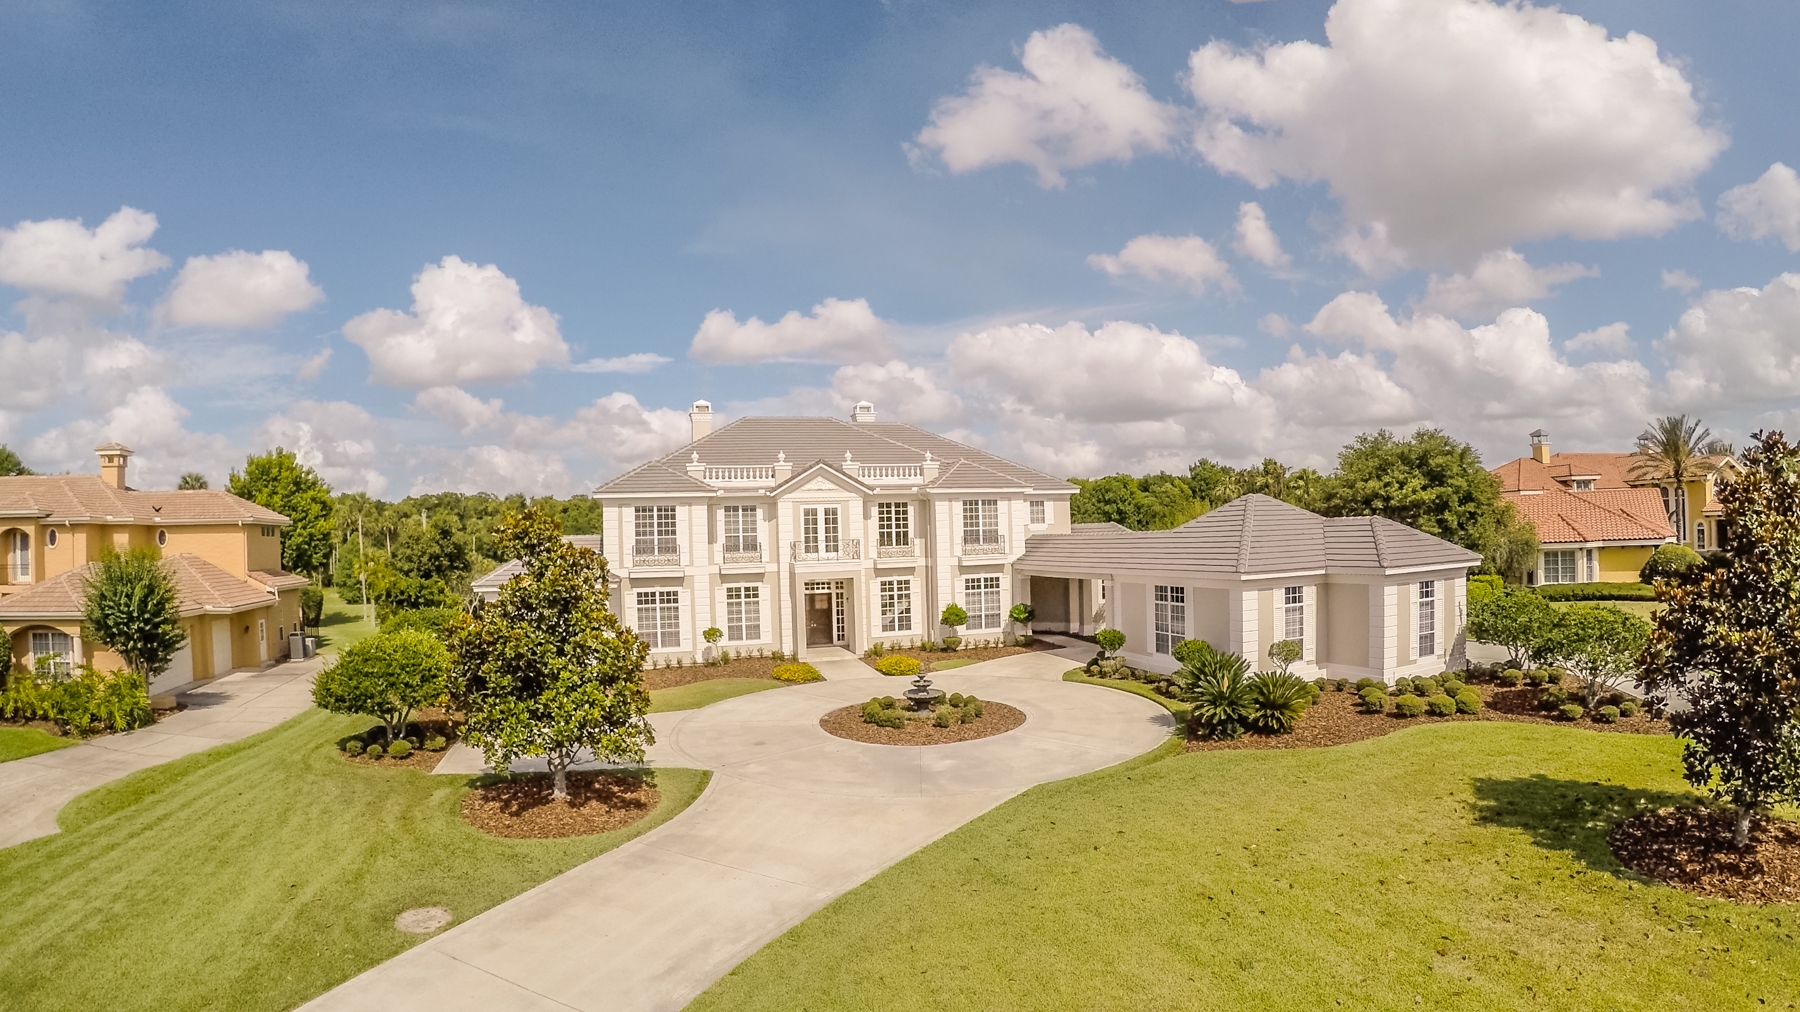 Property For Sale at Longwood, Florida